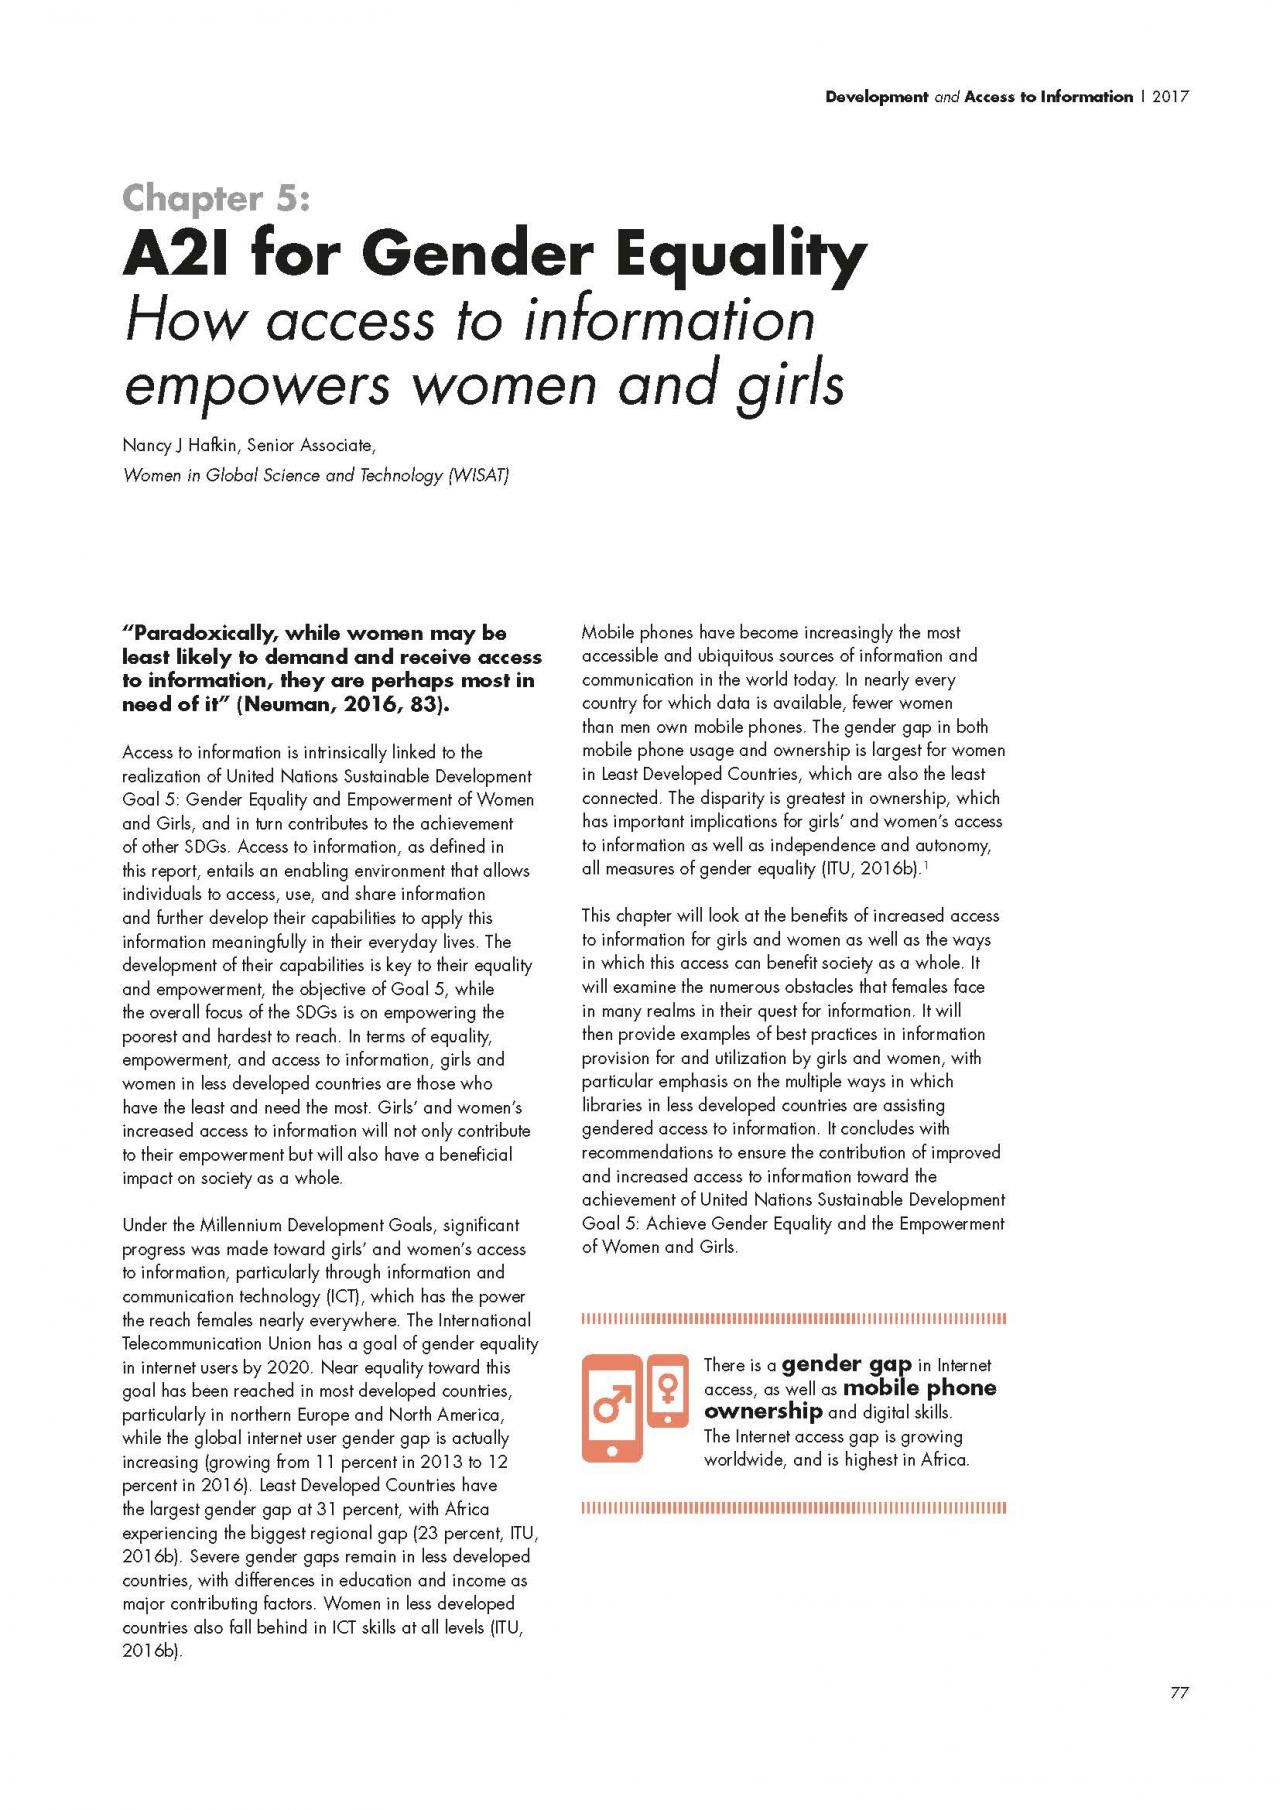 Chapter 5: A2I for Gender Equality: How access to information empowers women and girls